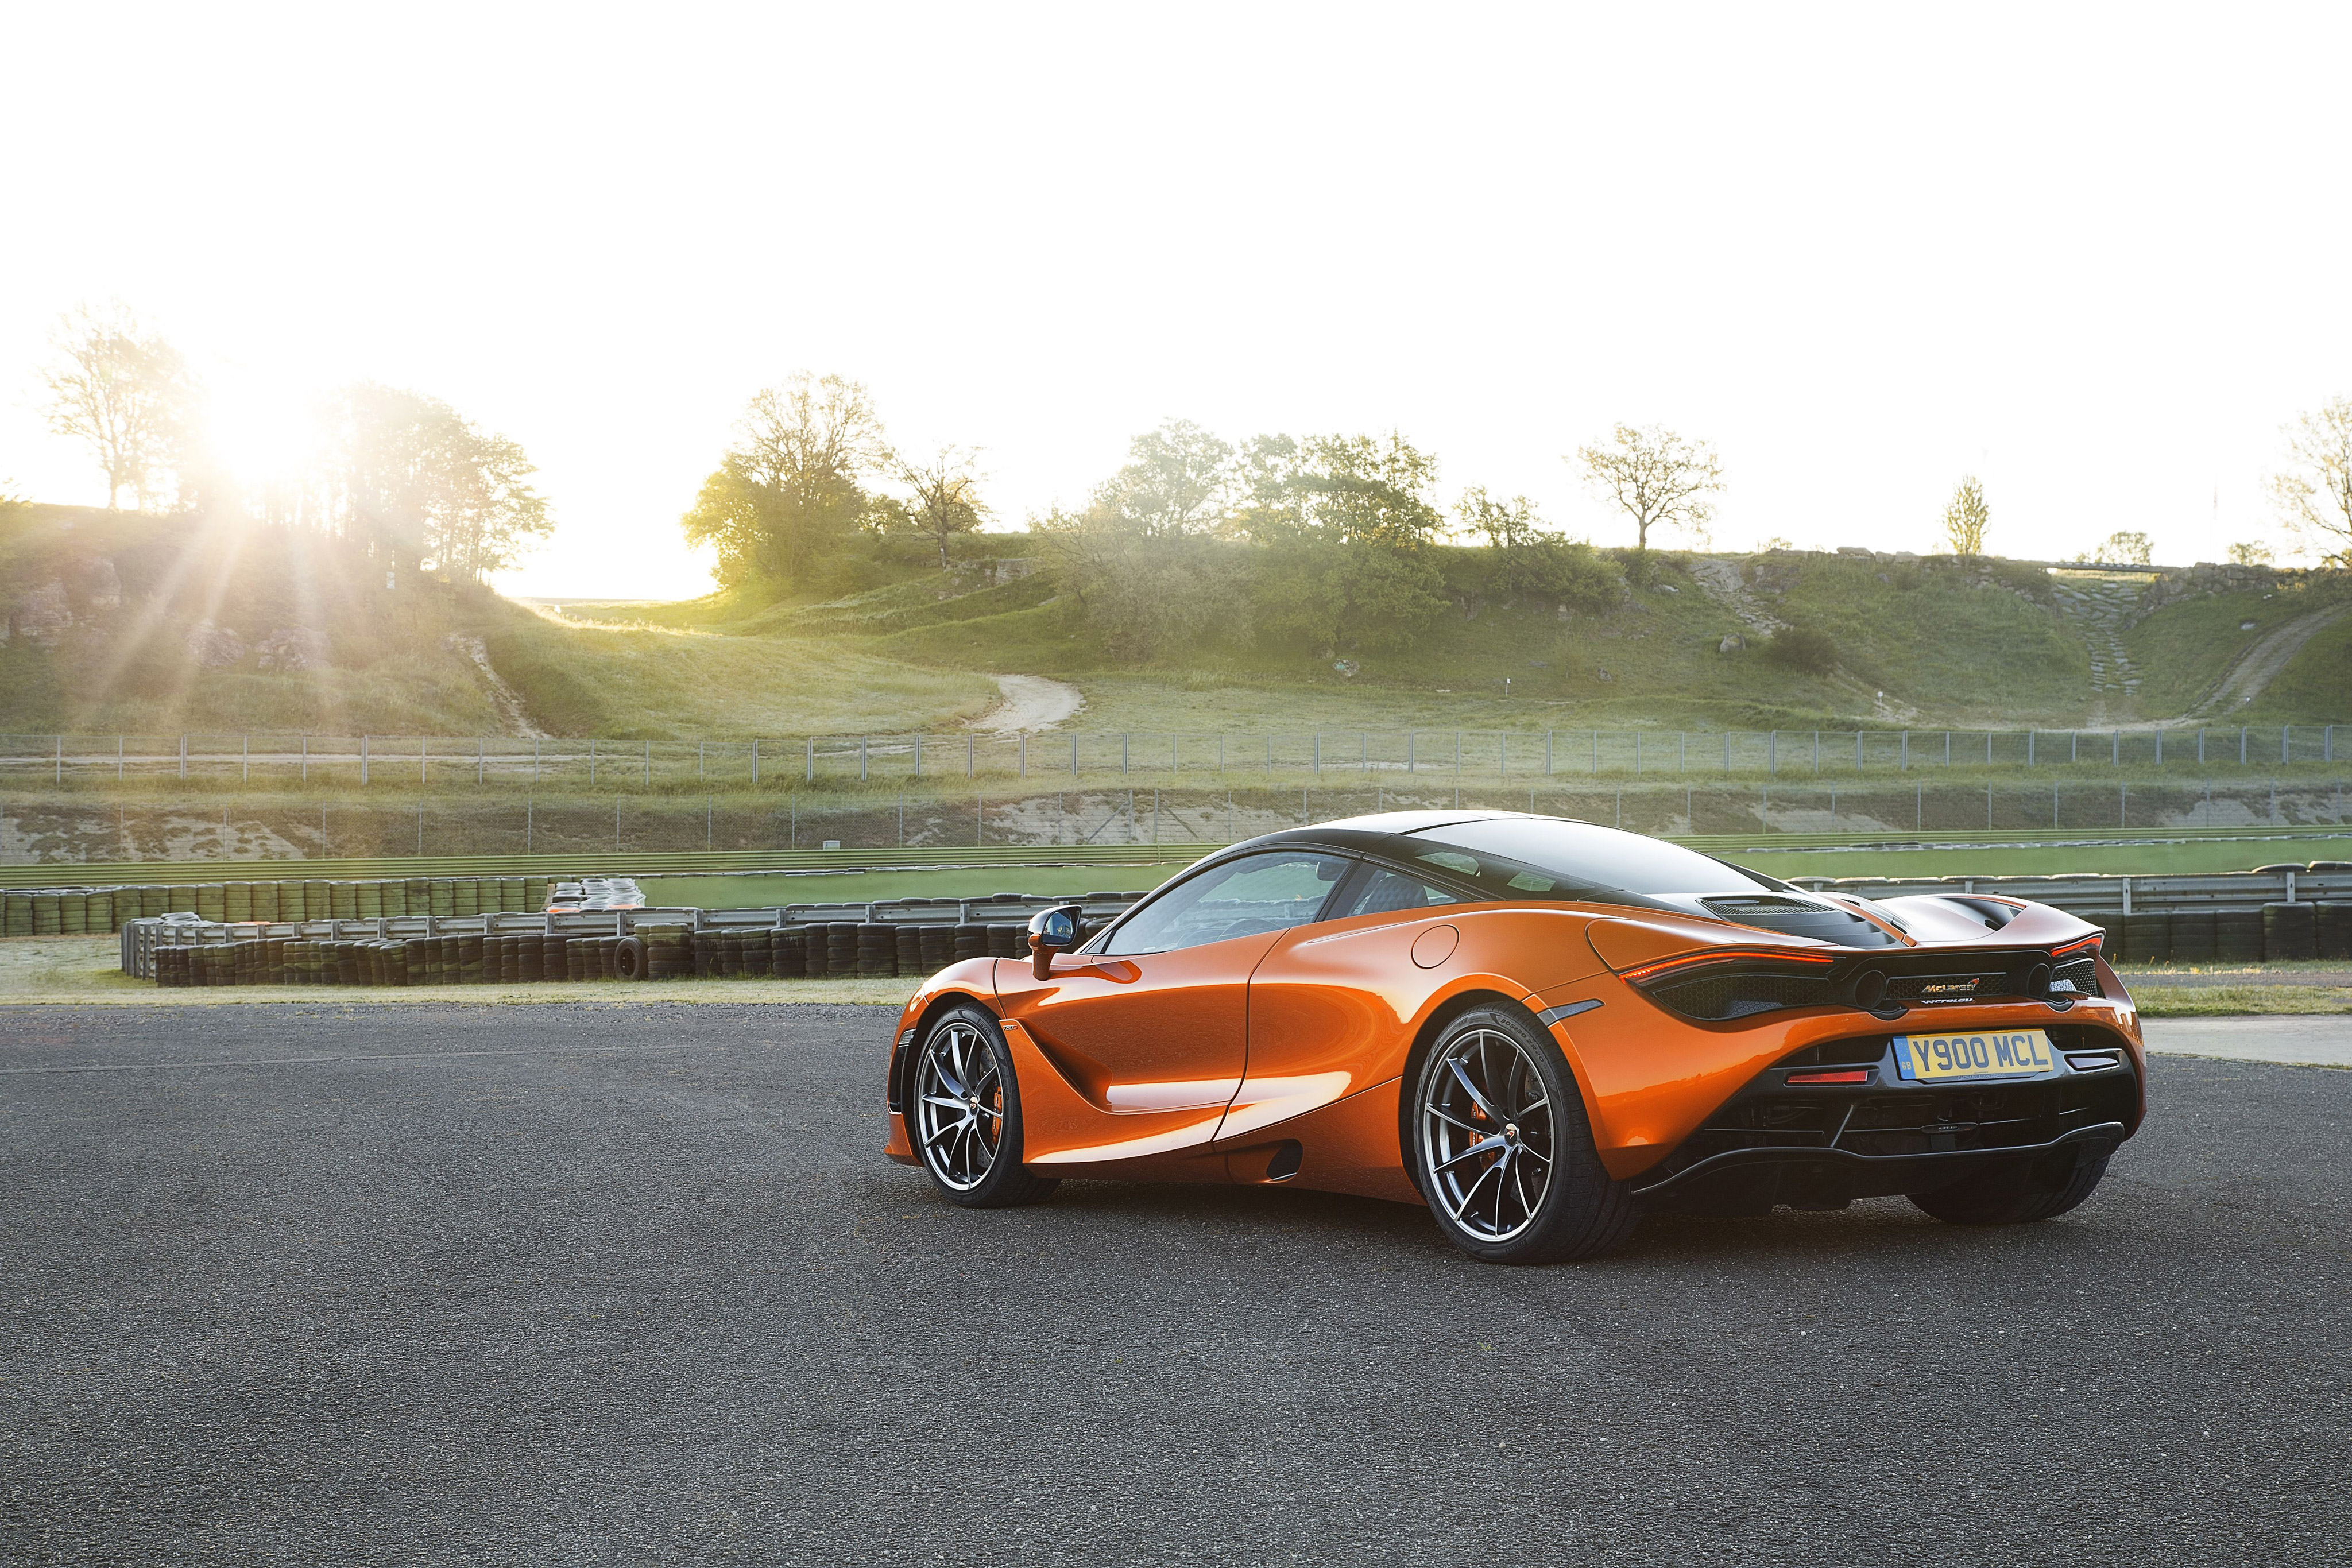 2018 mclaren 720s rear, hd cars, 4k wallpapers, images, backgrounds